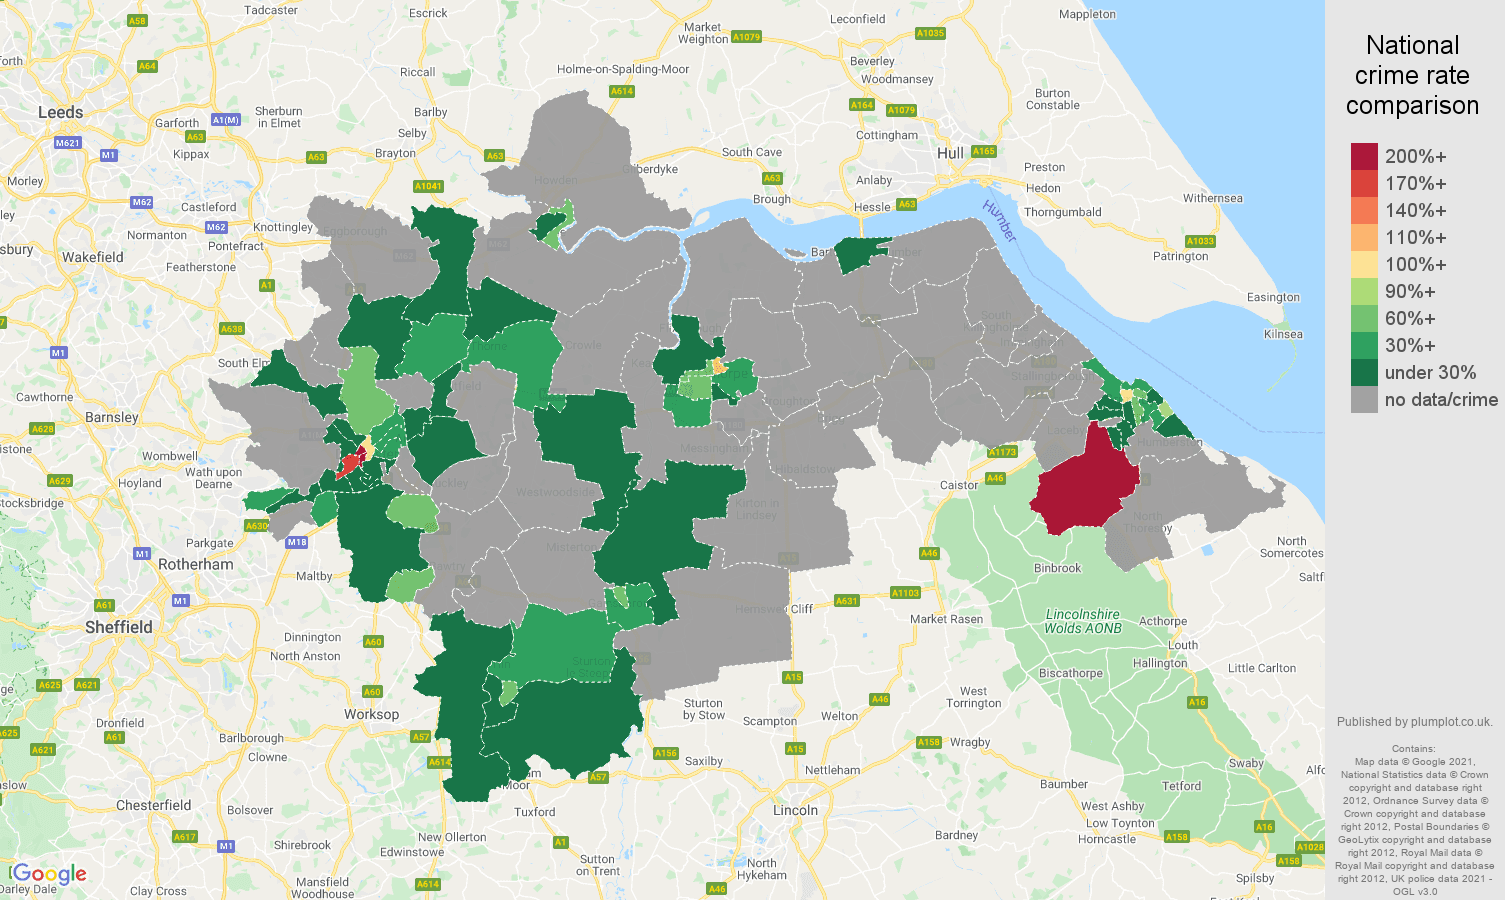 Doncaster theft from the person crime rate comparison map